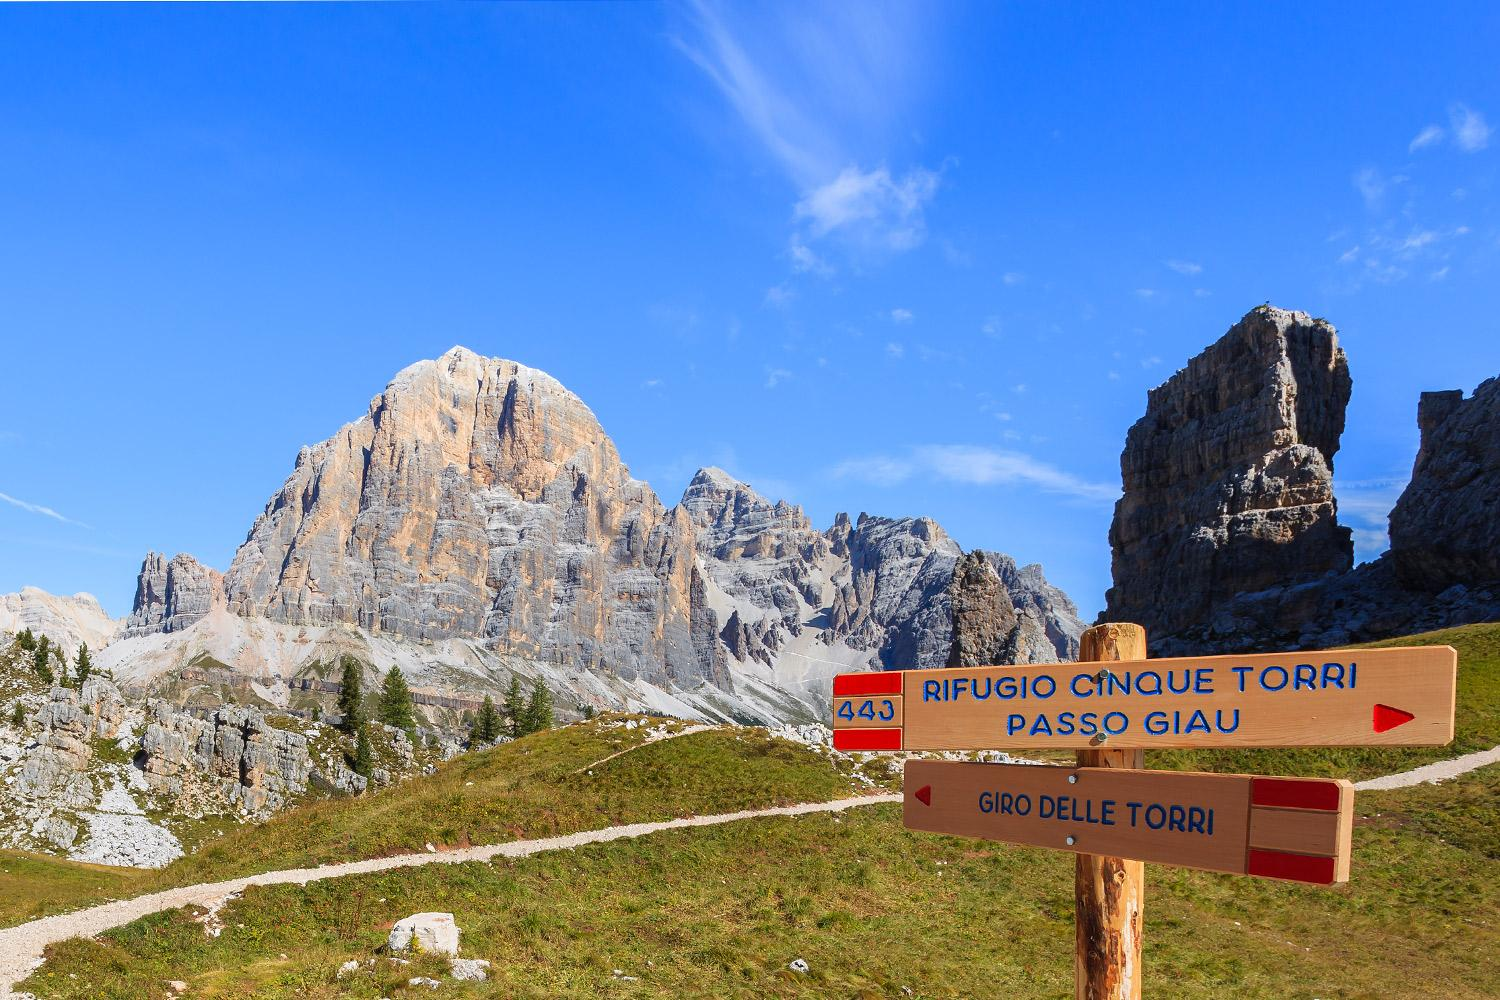 Self-guided trek along the Alta Via 1 in the Dolomites